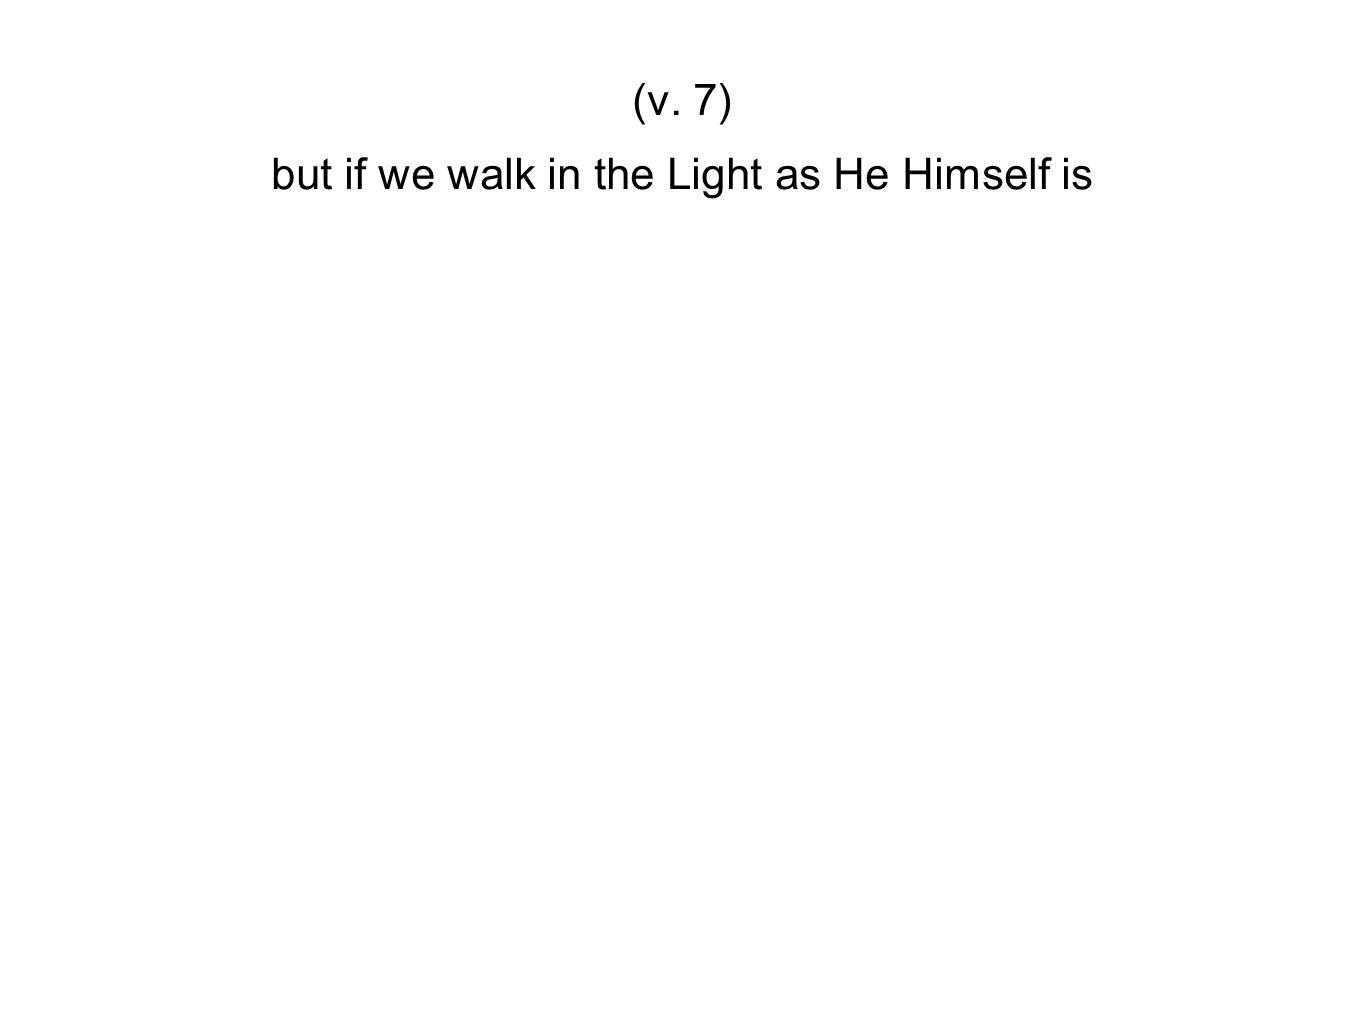 but if we walk in the Light as He Himself is